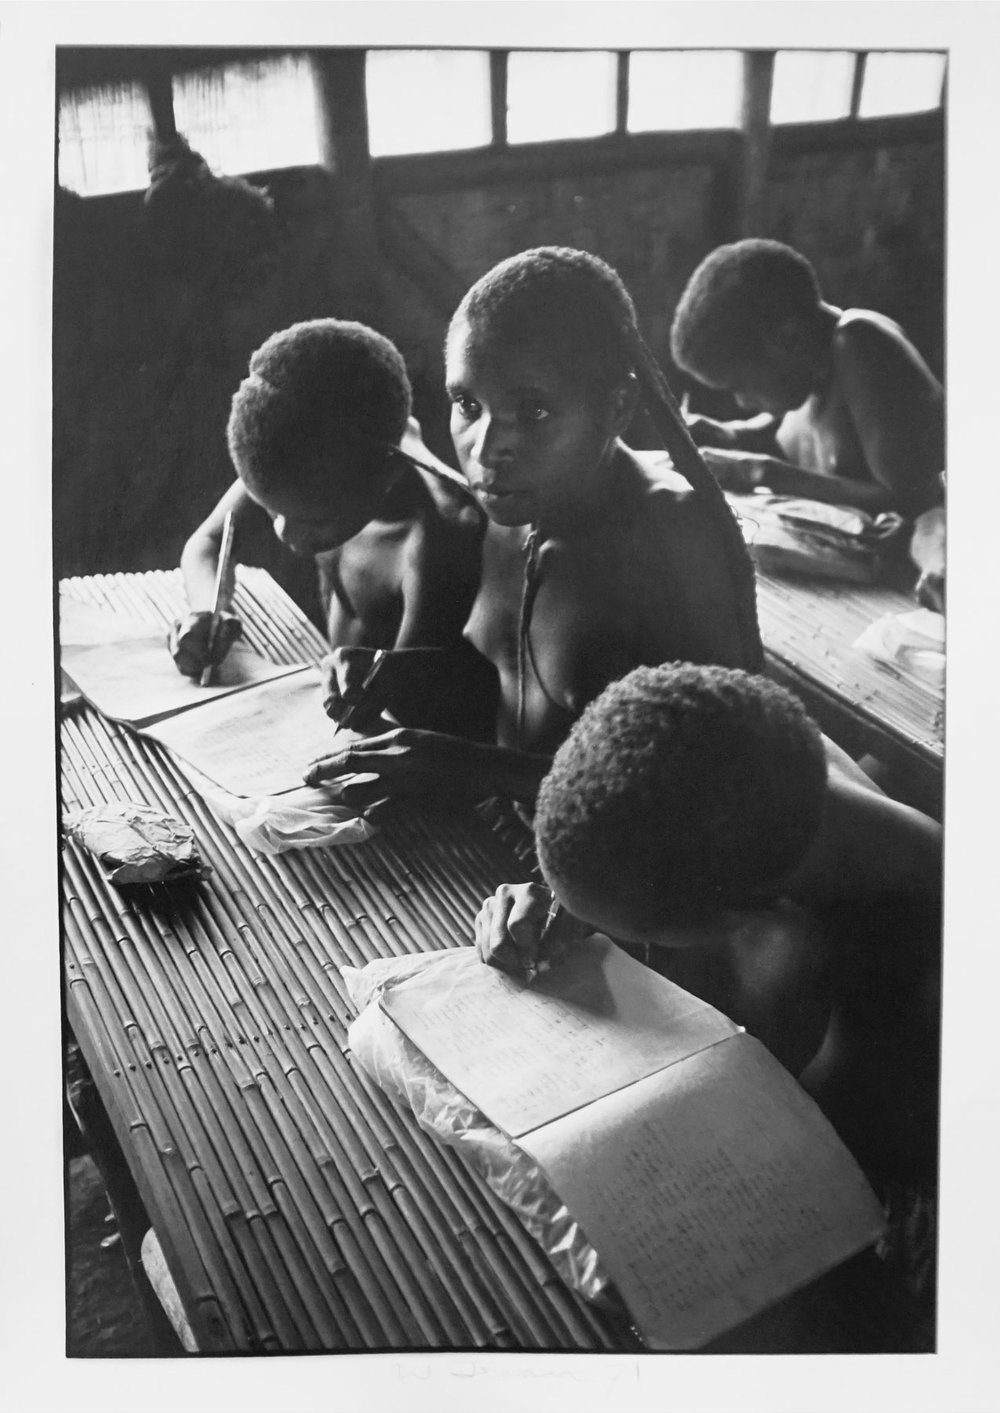 77. Richard Woldendorp, 'Children in school, Baliem Valley, West Irian Jaya, Indonesia', BW359, taken and printed in 1971, Vintage Print